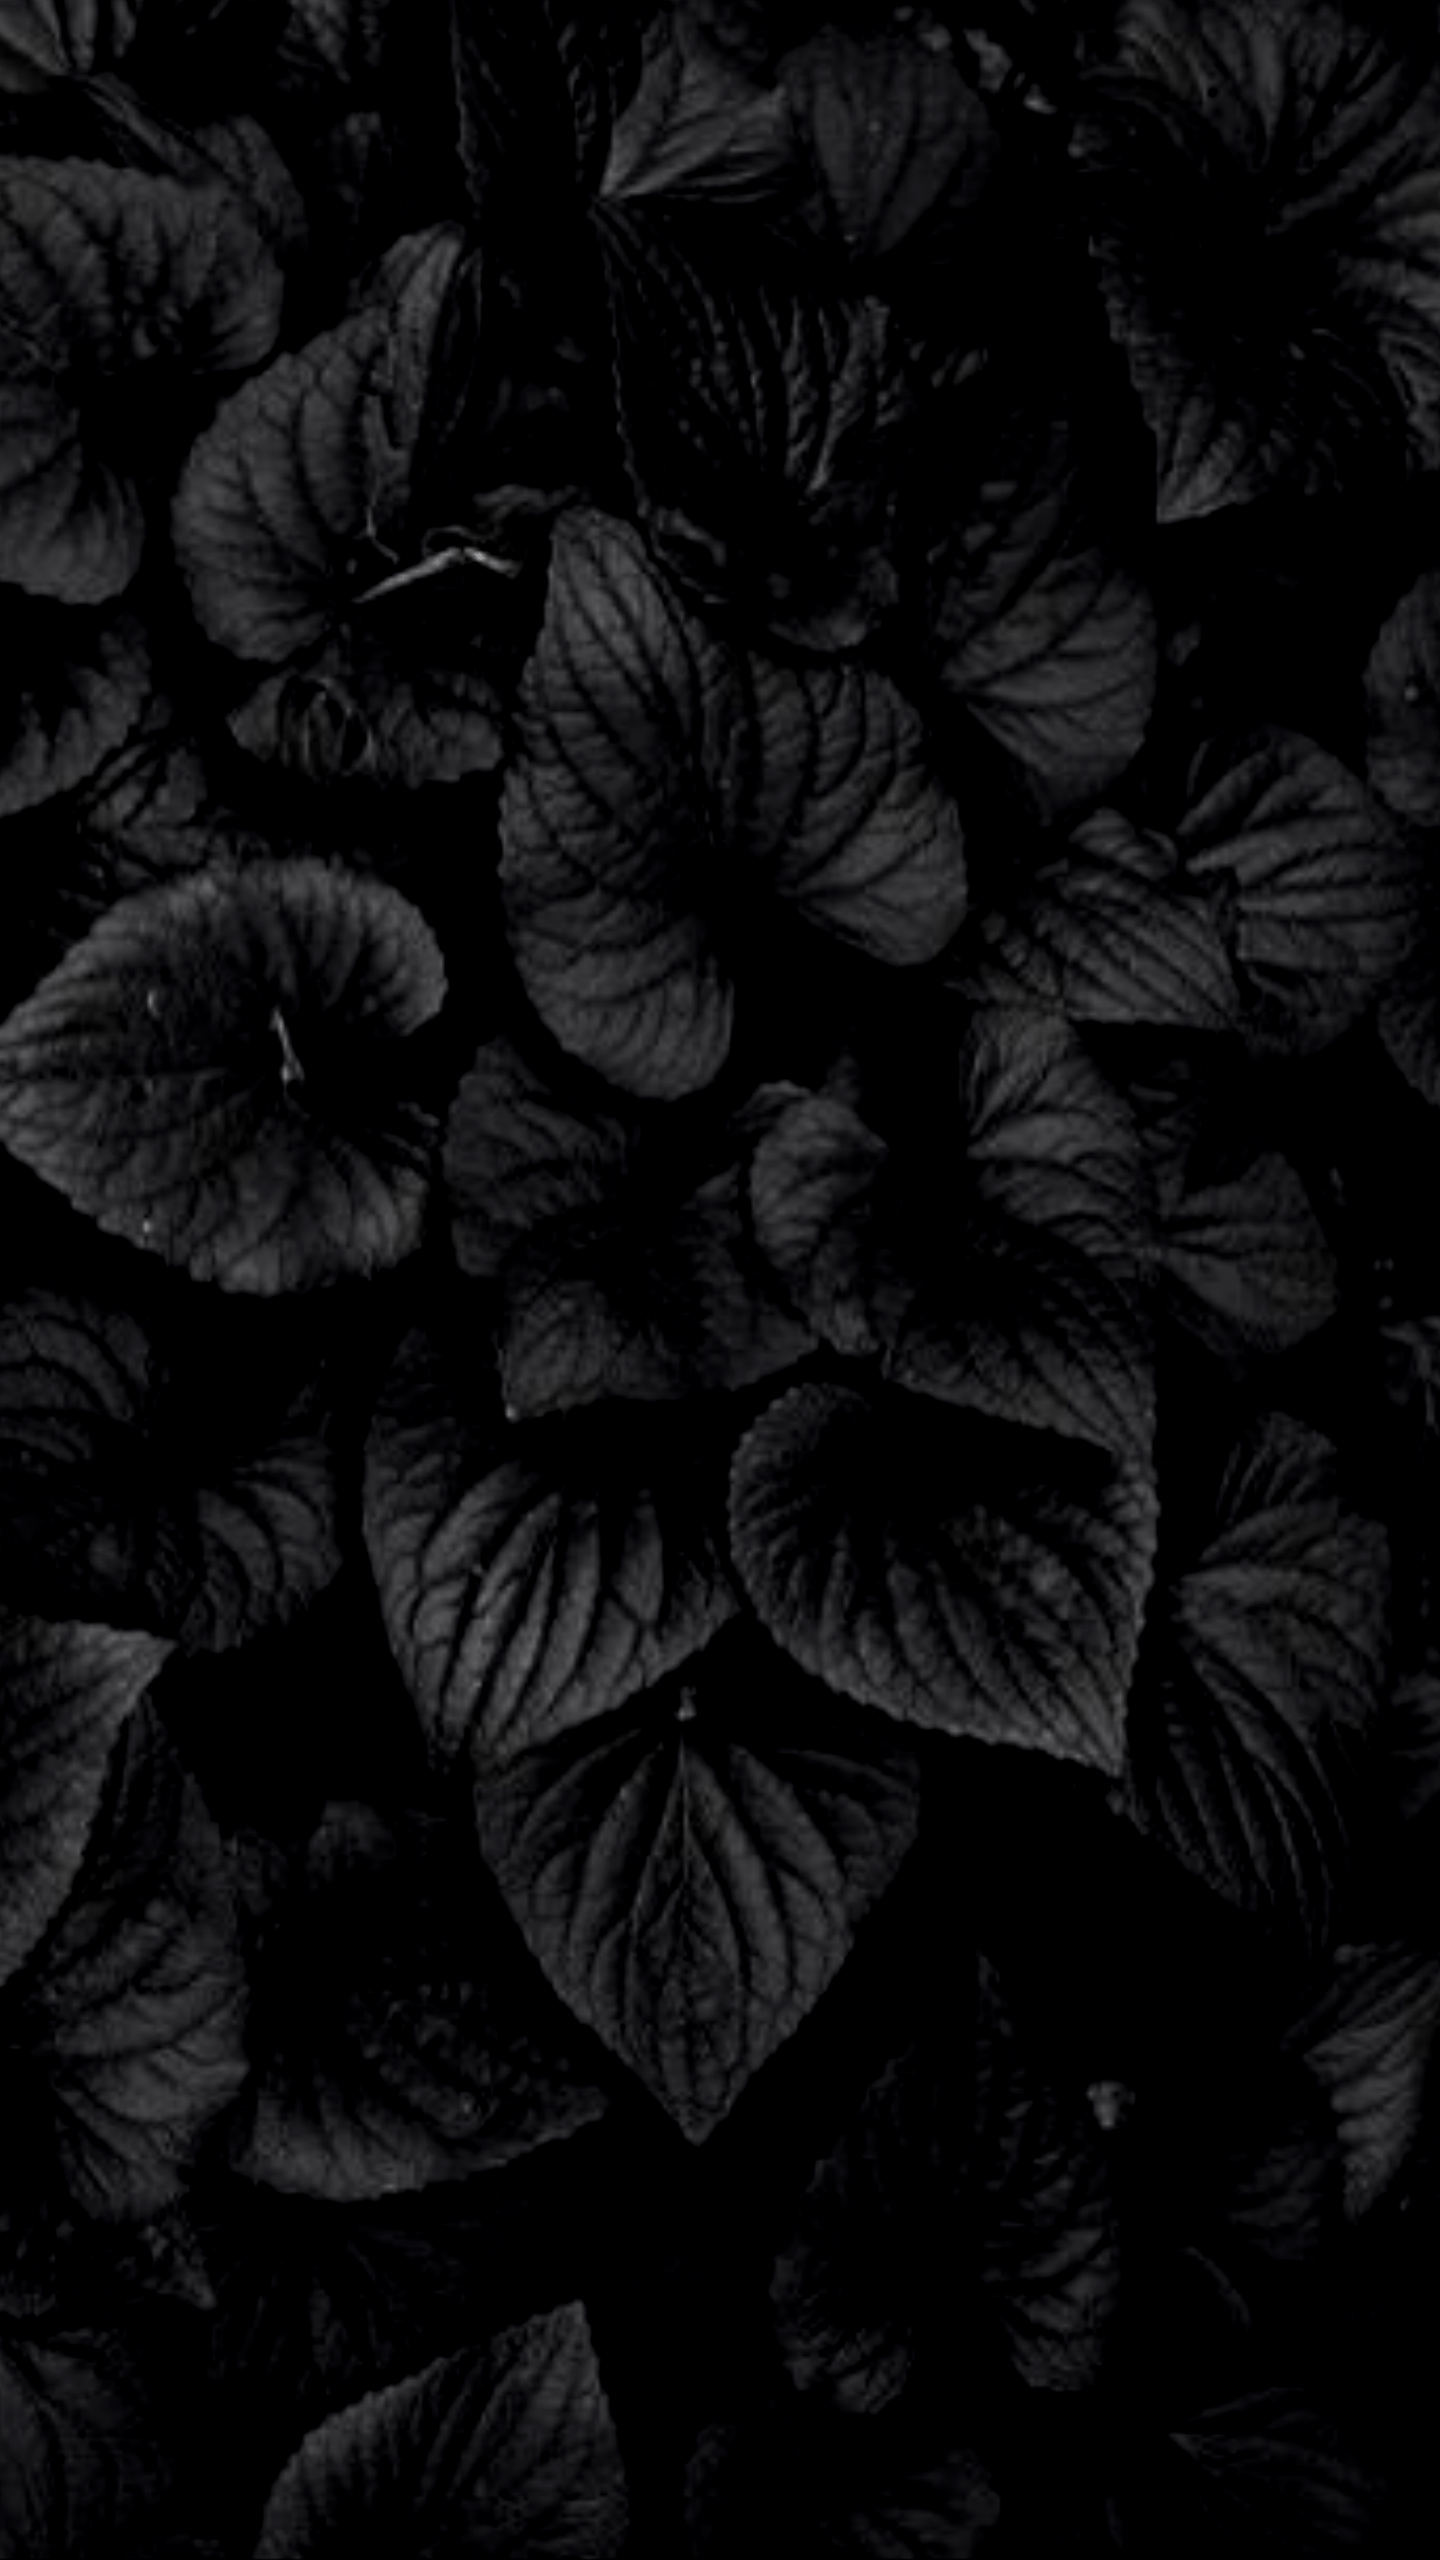 4k Wallpapers Dark Posted By Christopher Sellers